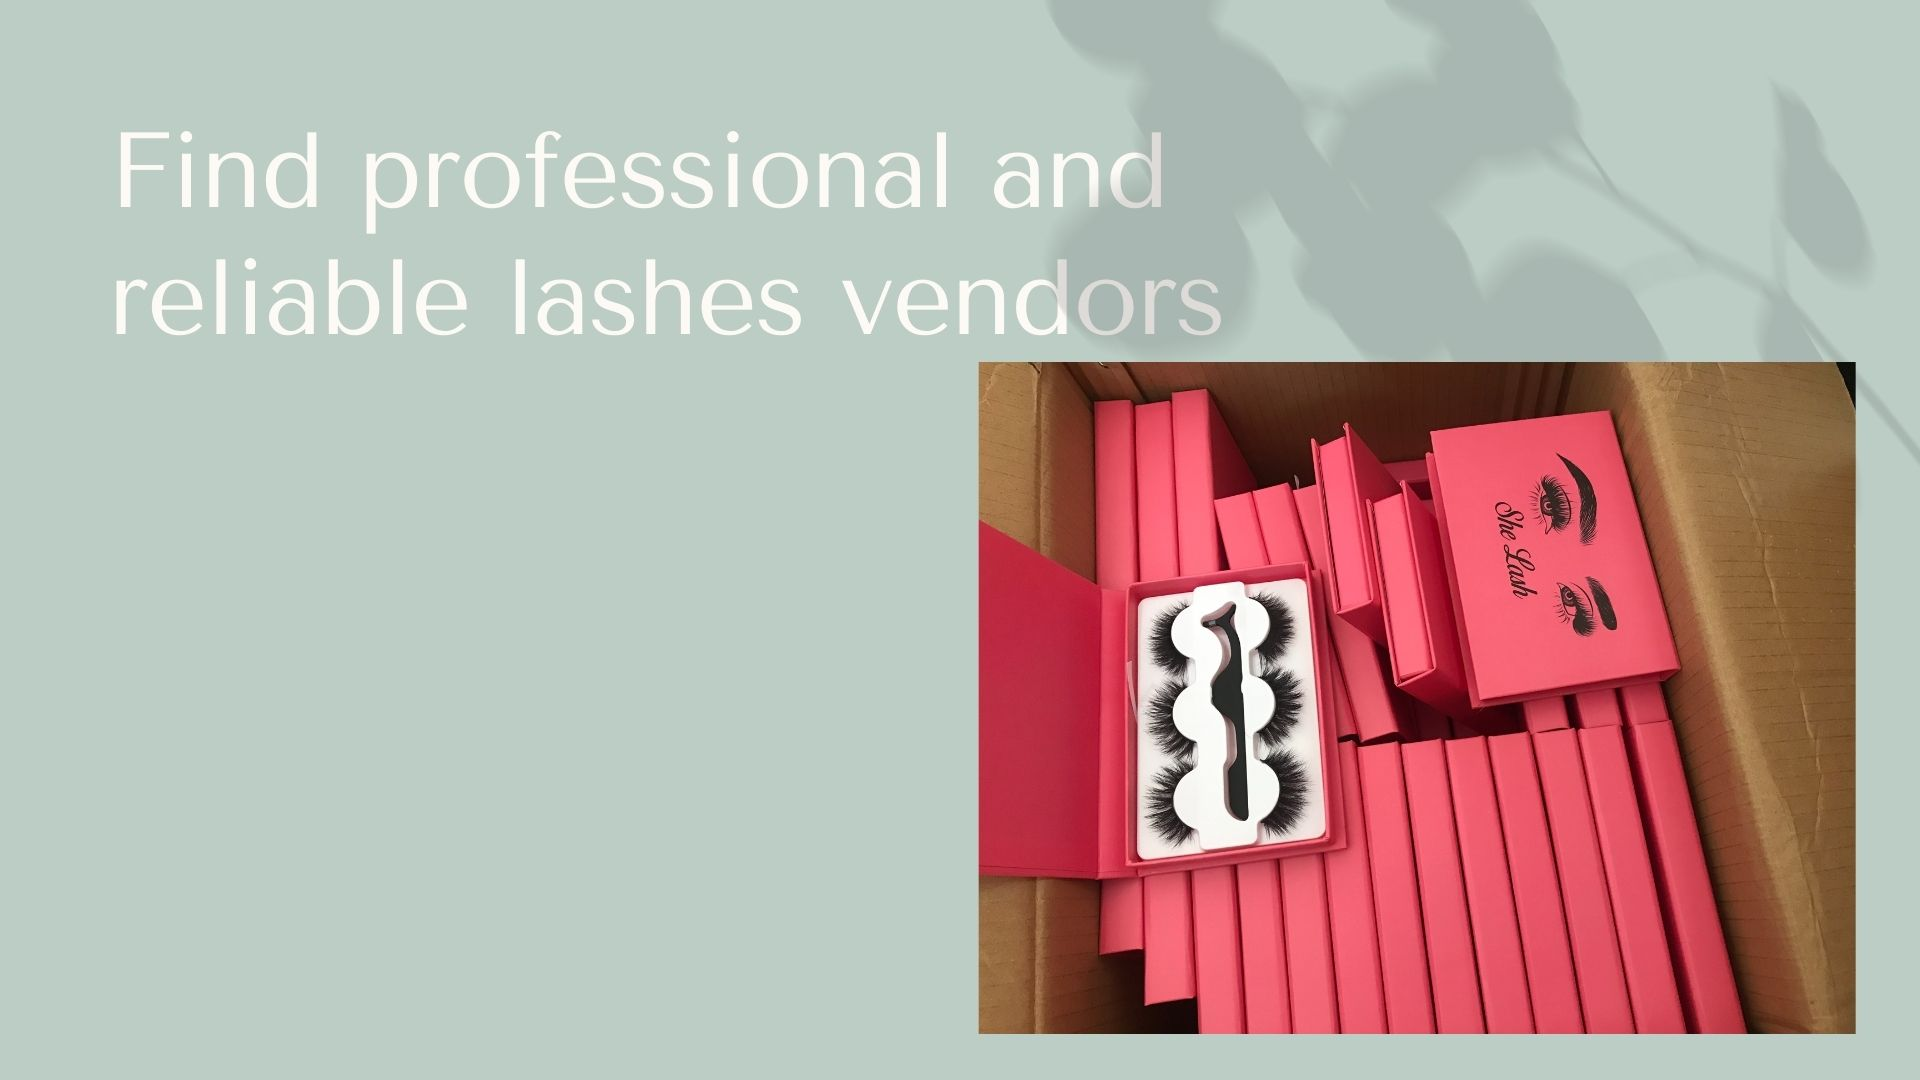 Find professional and reliable lashes vendors